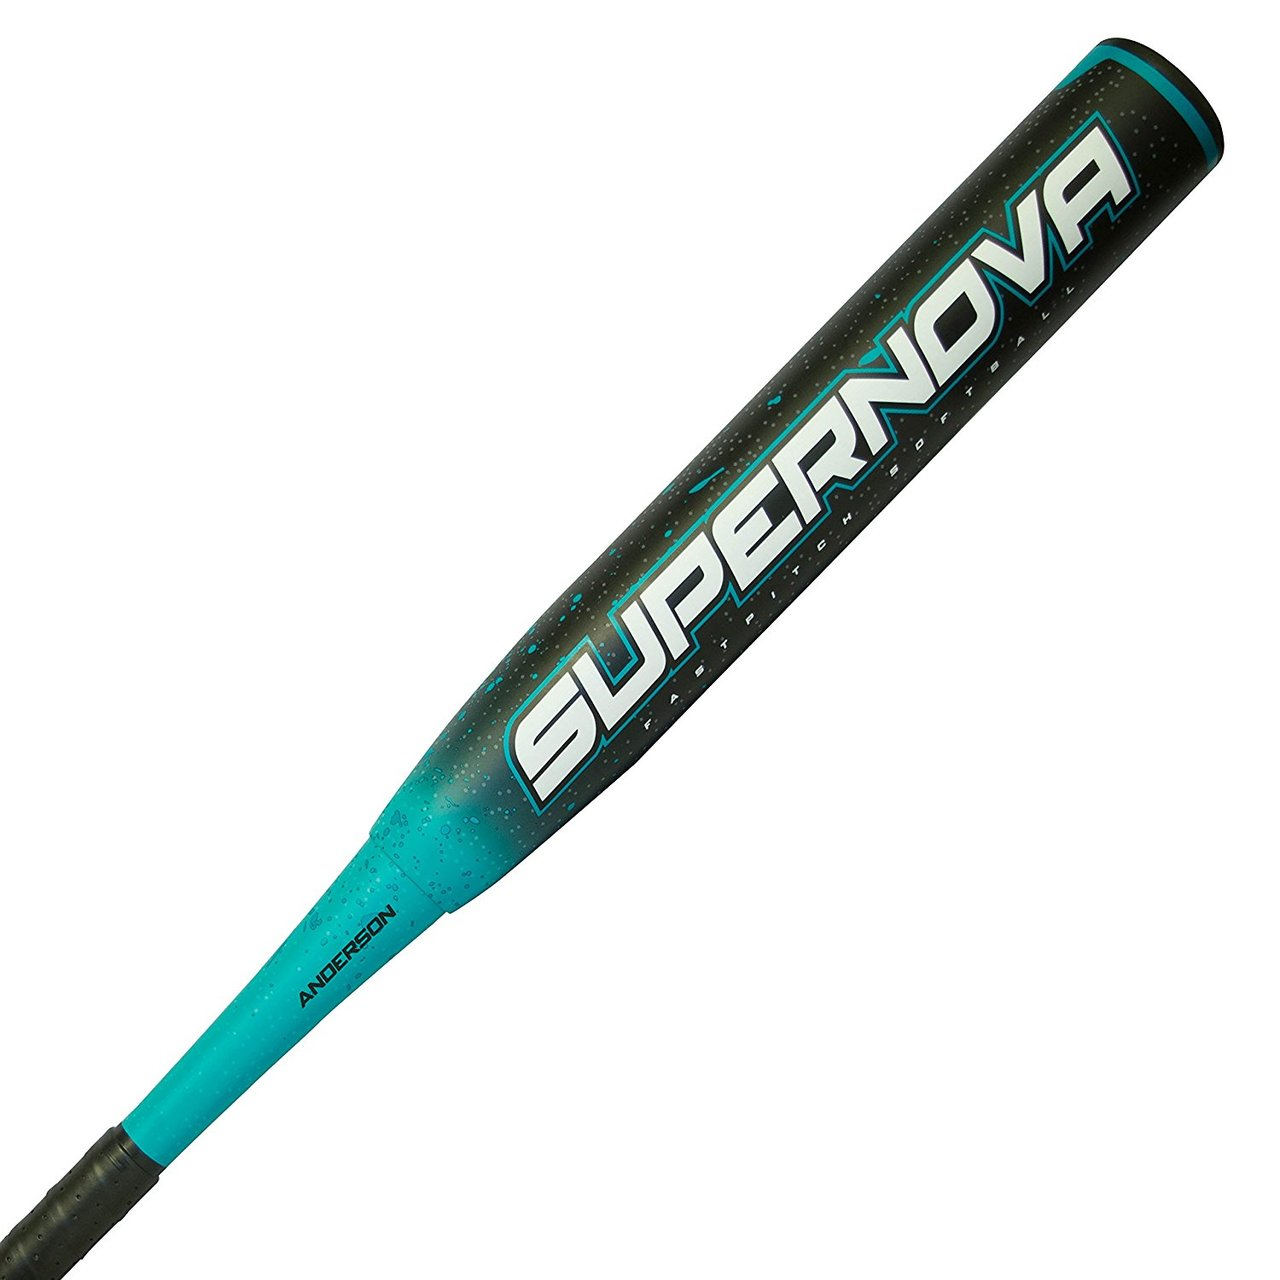 anderson-supernova-10-fast-pitch-softball-bat-34-inch-24-oz 017035-3424  874147008478 2.25 Barrel -10 Drop Weight Ultra balanced for more speed and